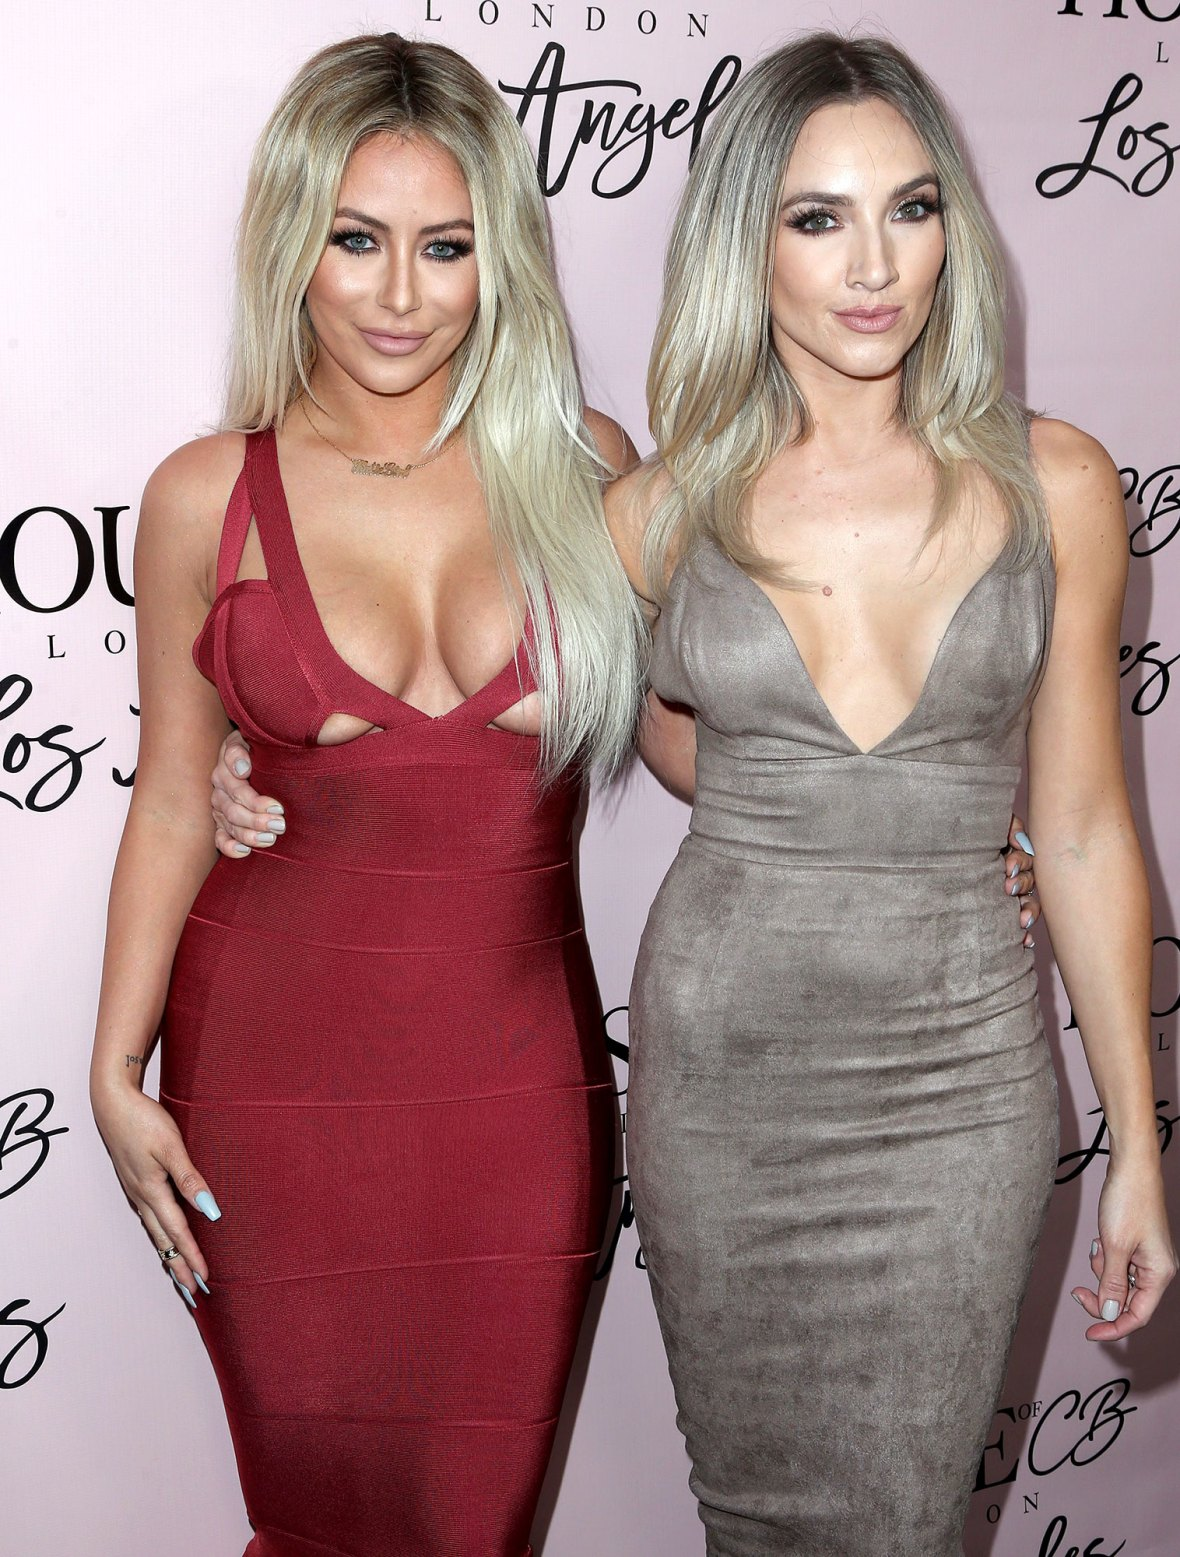 Aubrey O'Day and Shannon Bex